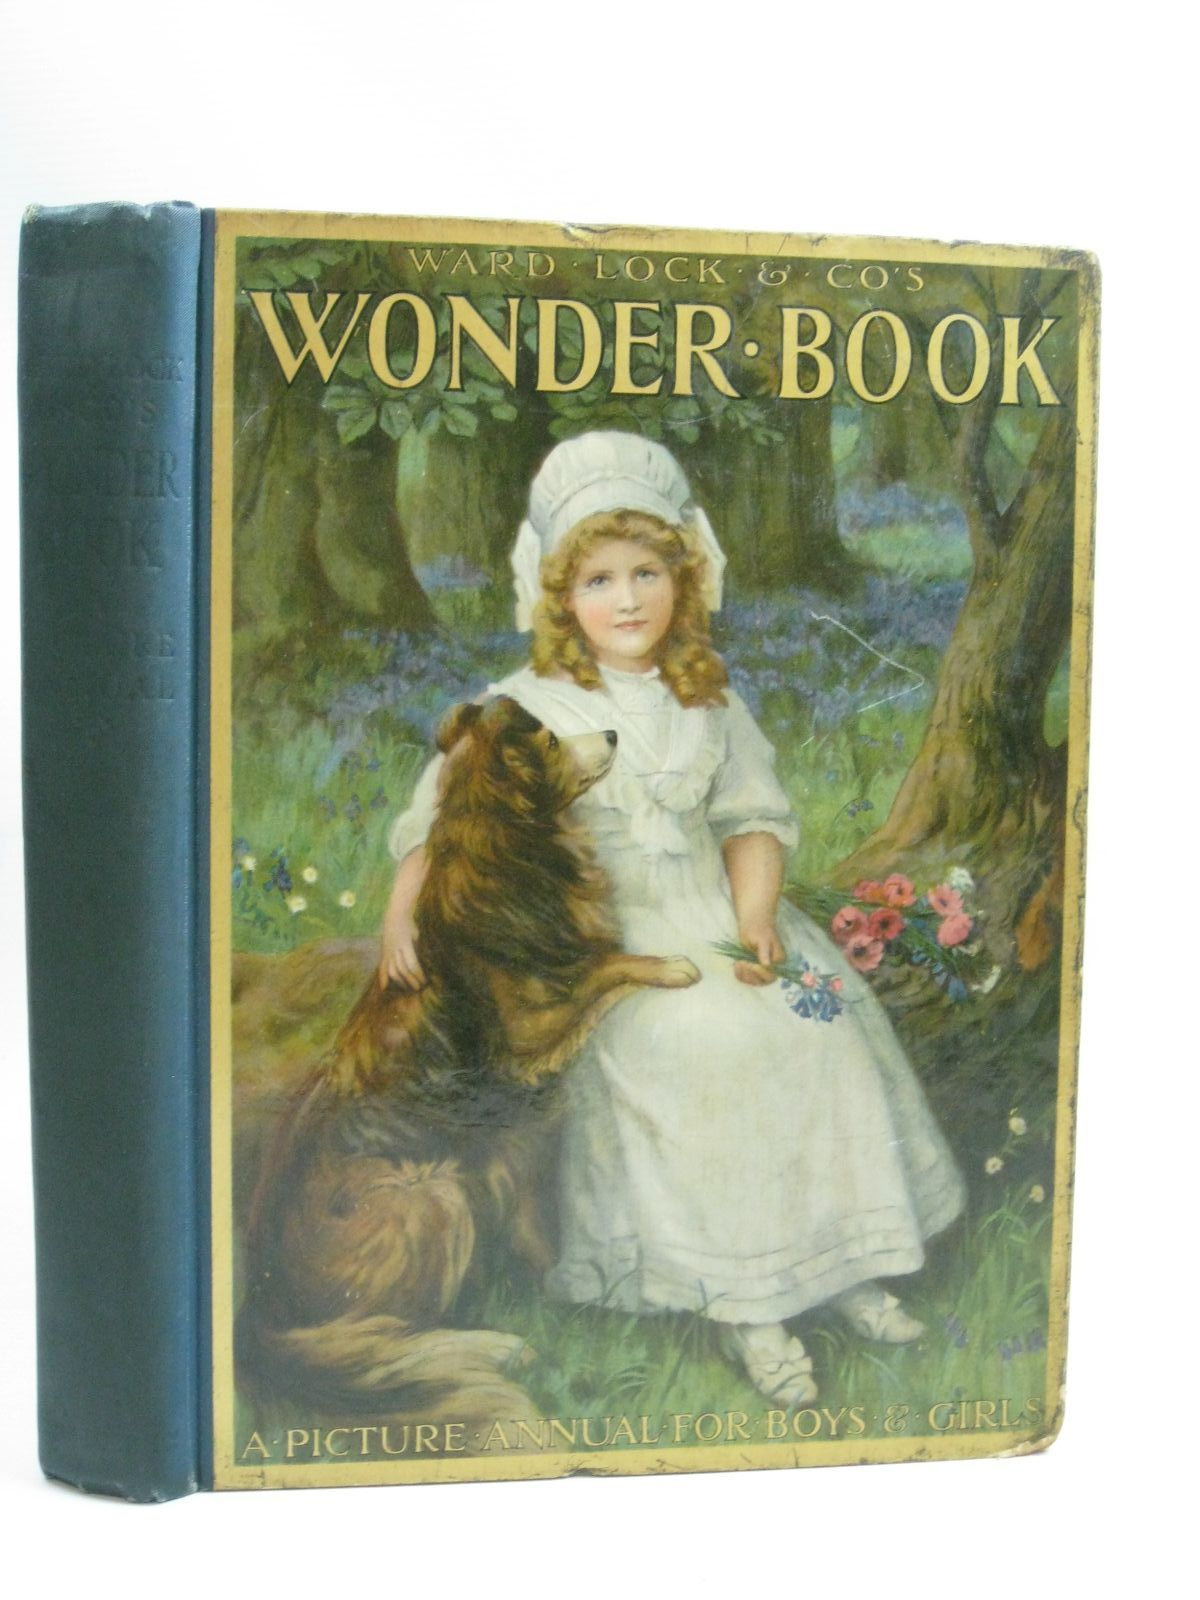 Photo of WARD LOCK & CO'S WONDER BOOK 1911 written by Golding, Harry Herbertson, Agnes Grozier Pope, Jessie Davidson, Gladys Harris, A.L. et al, illustrated by Pearse, S.B. Maybank, Thomas Pope, Jessie et al., published by Ward, Lock & Co. Ltd. (STOCK CODE: 1506006)  for sale by Stella & Rose's Books